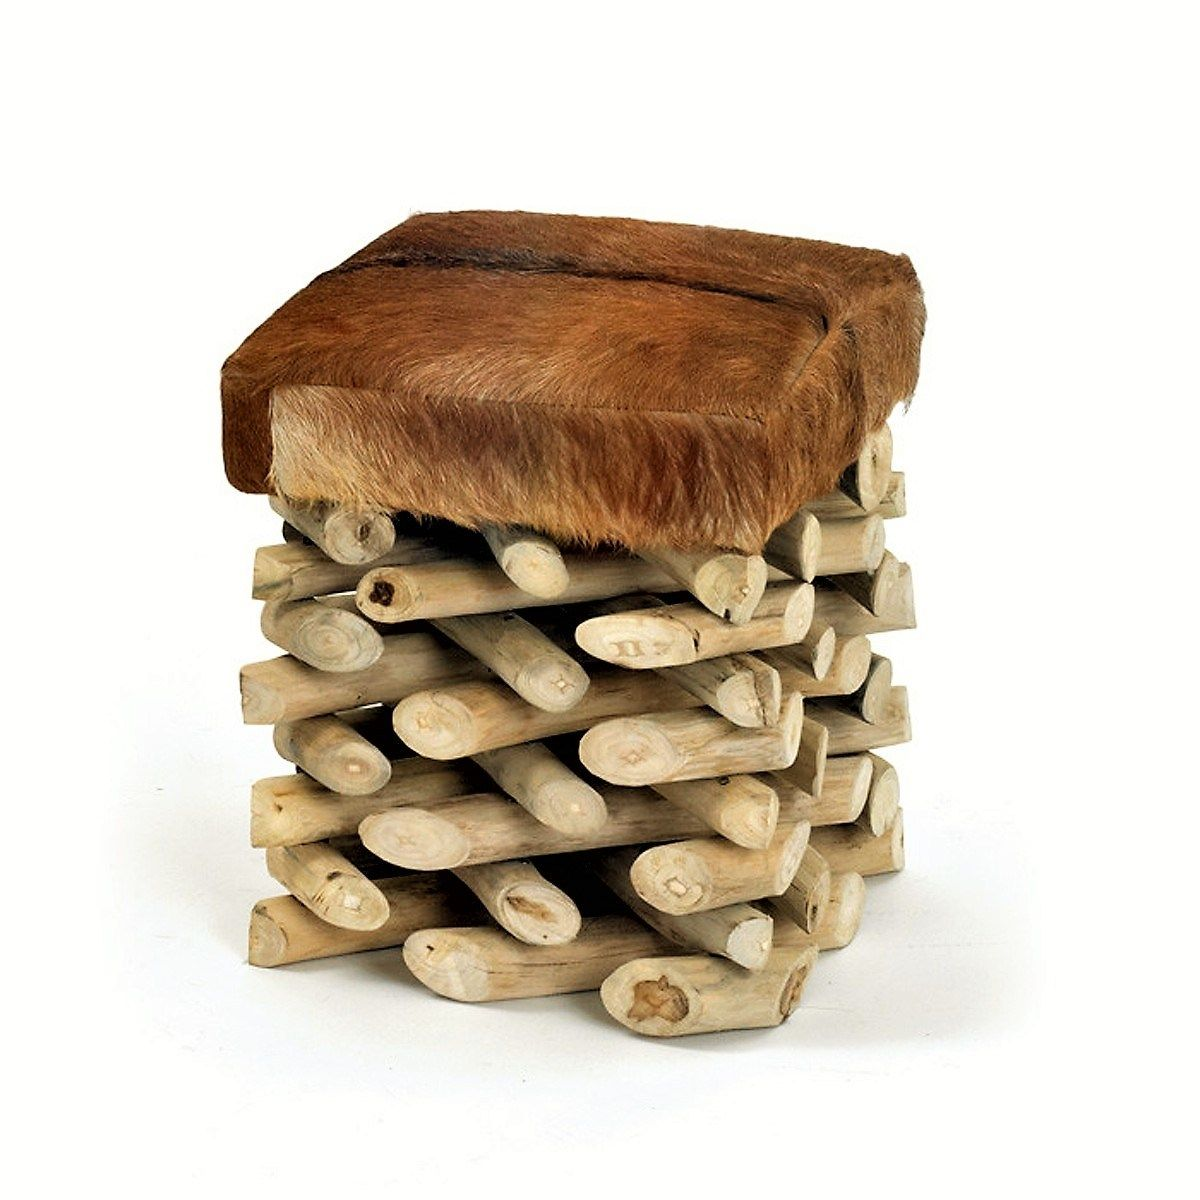 Short Wooden Stool - Rustic Log Stool with Hair in Hide Seat  sc 1 st  Pinterest & Short Wooden Stool - Rustic Log Stool with Hair in Hide Seat ... islam-shia.org